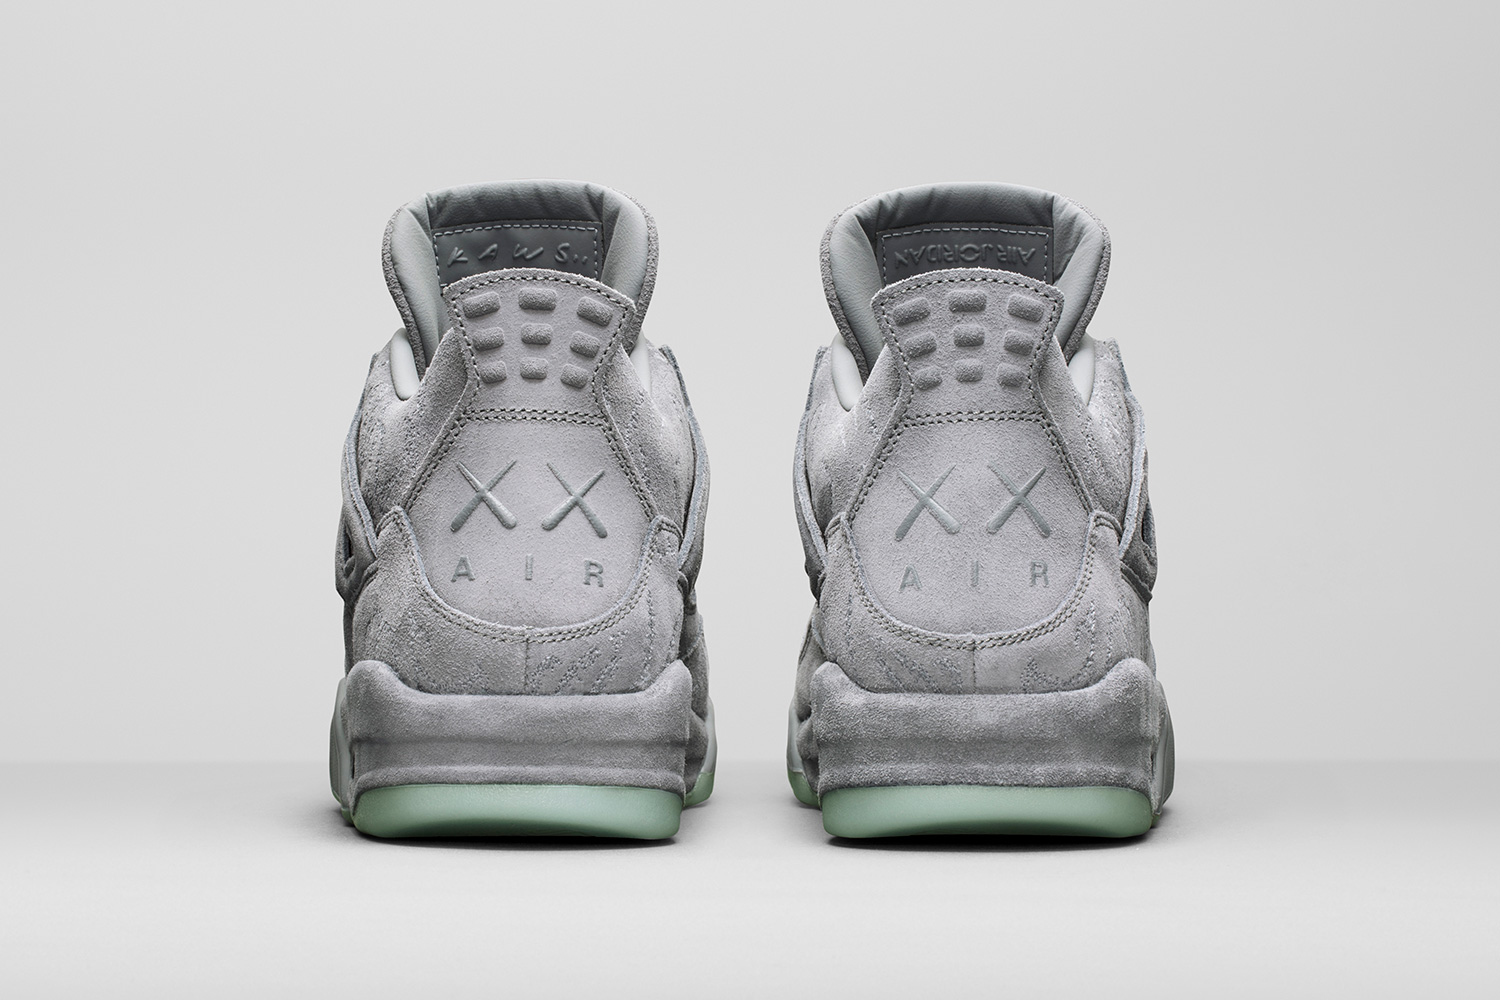 kaws-air-jordan-4-official-images-05